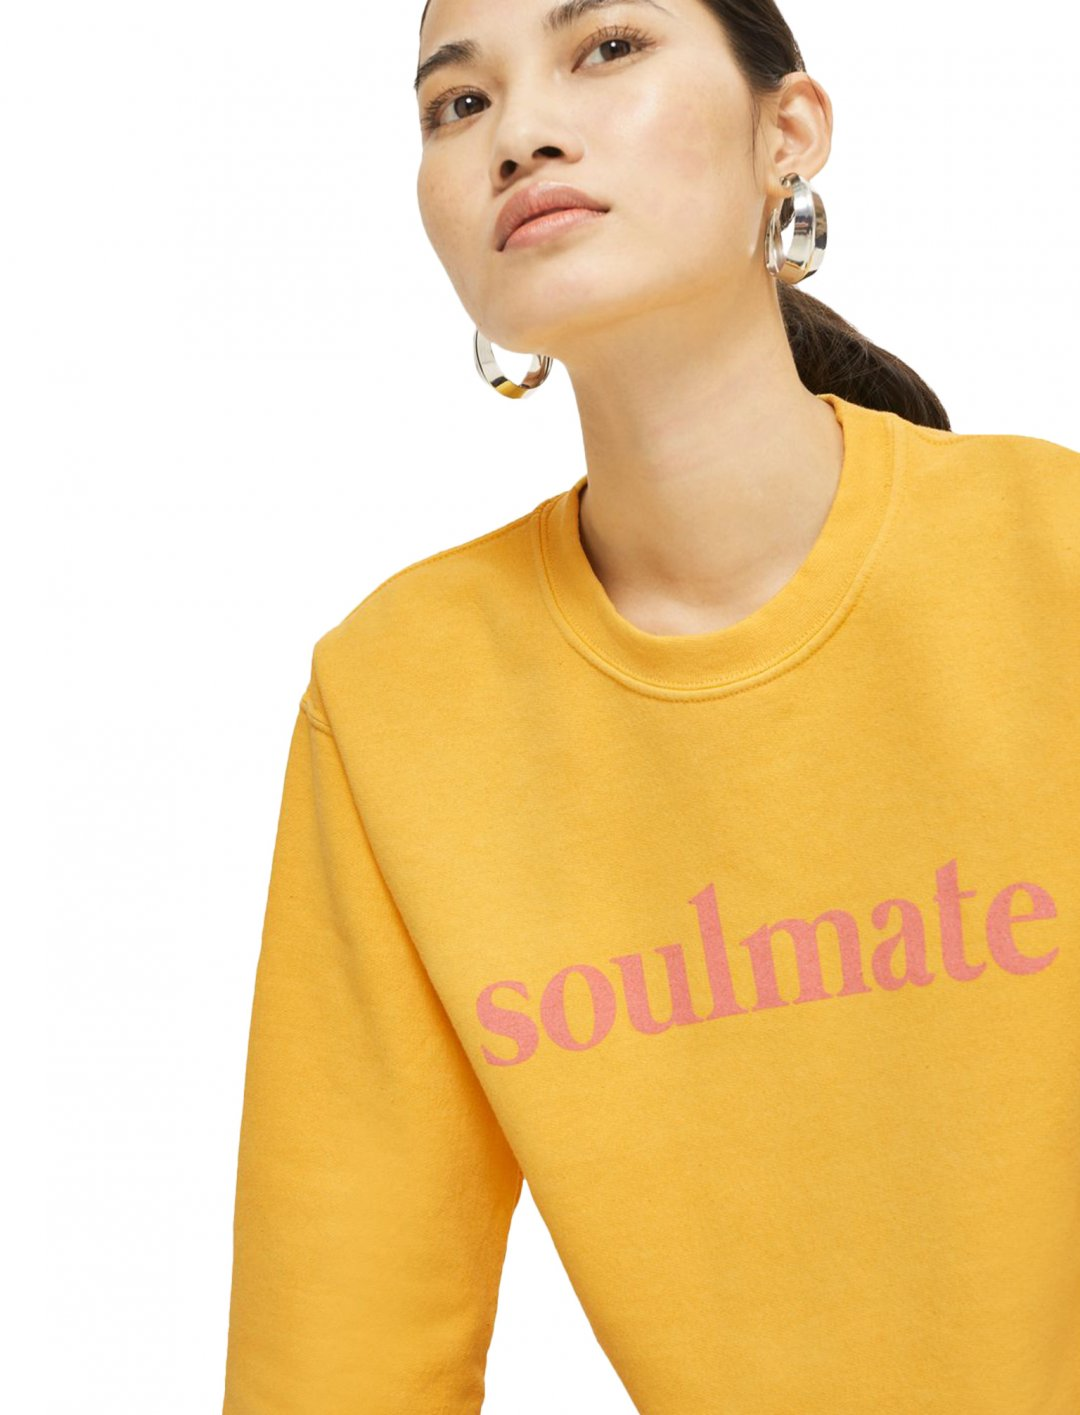 """Topshop Cropped 'Soulmate' Sweatshirt {""""id"""":5,""""product_section_id"""":1,""""name"""":""""Clothing"""",""""order"""":5} Topshop"""